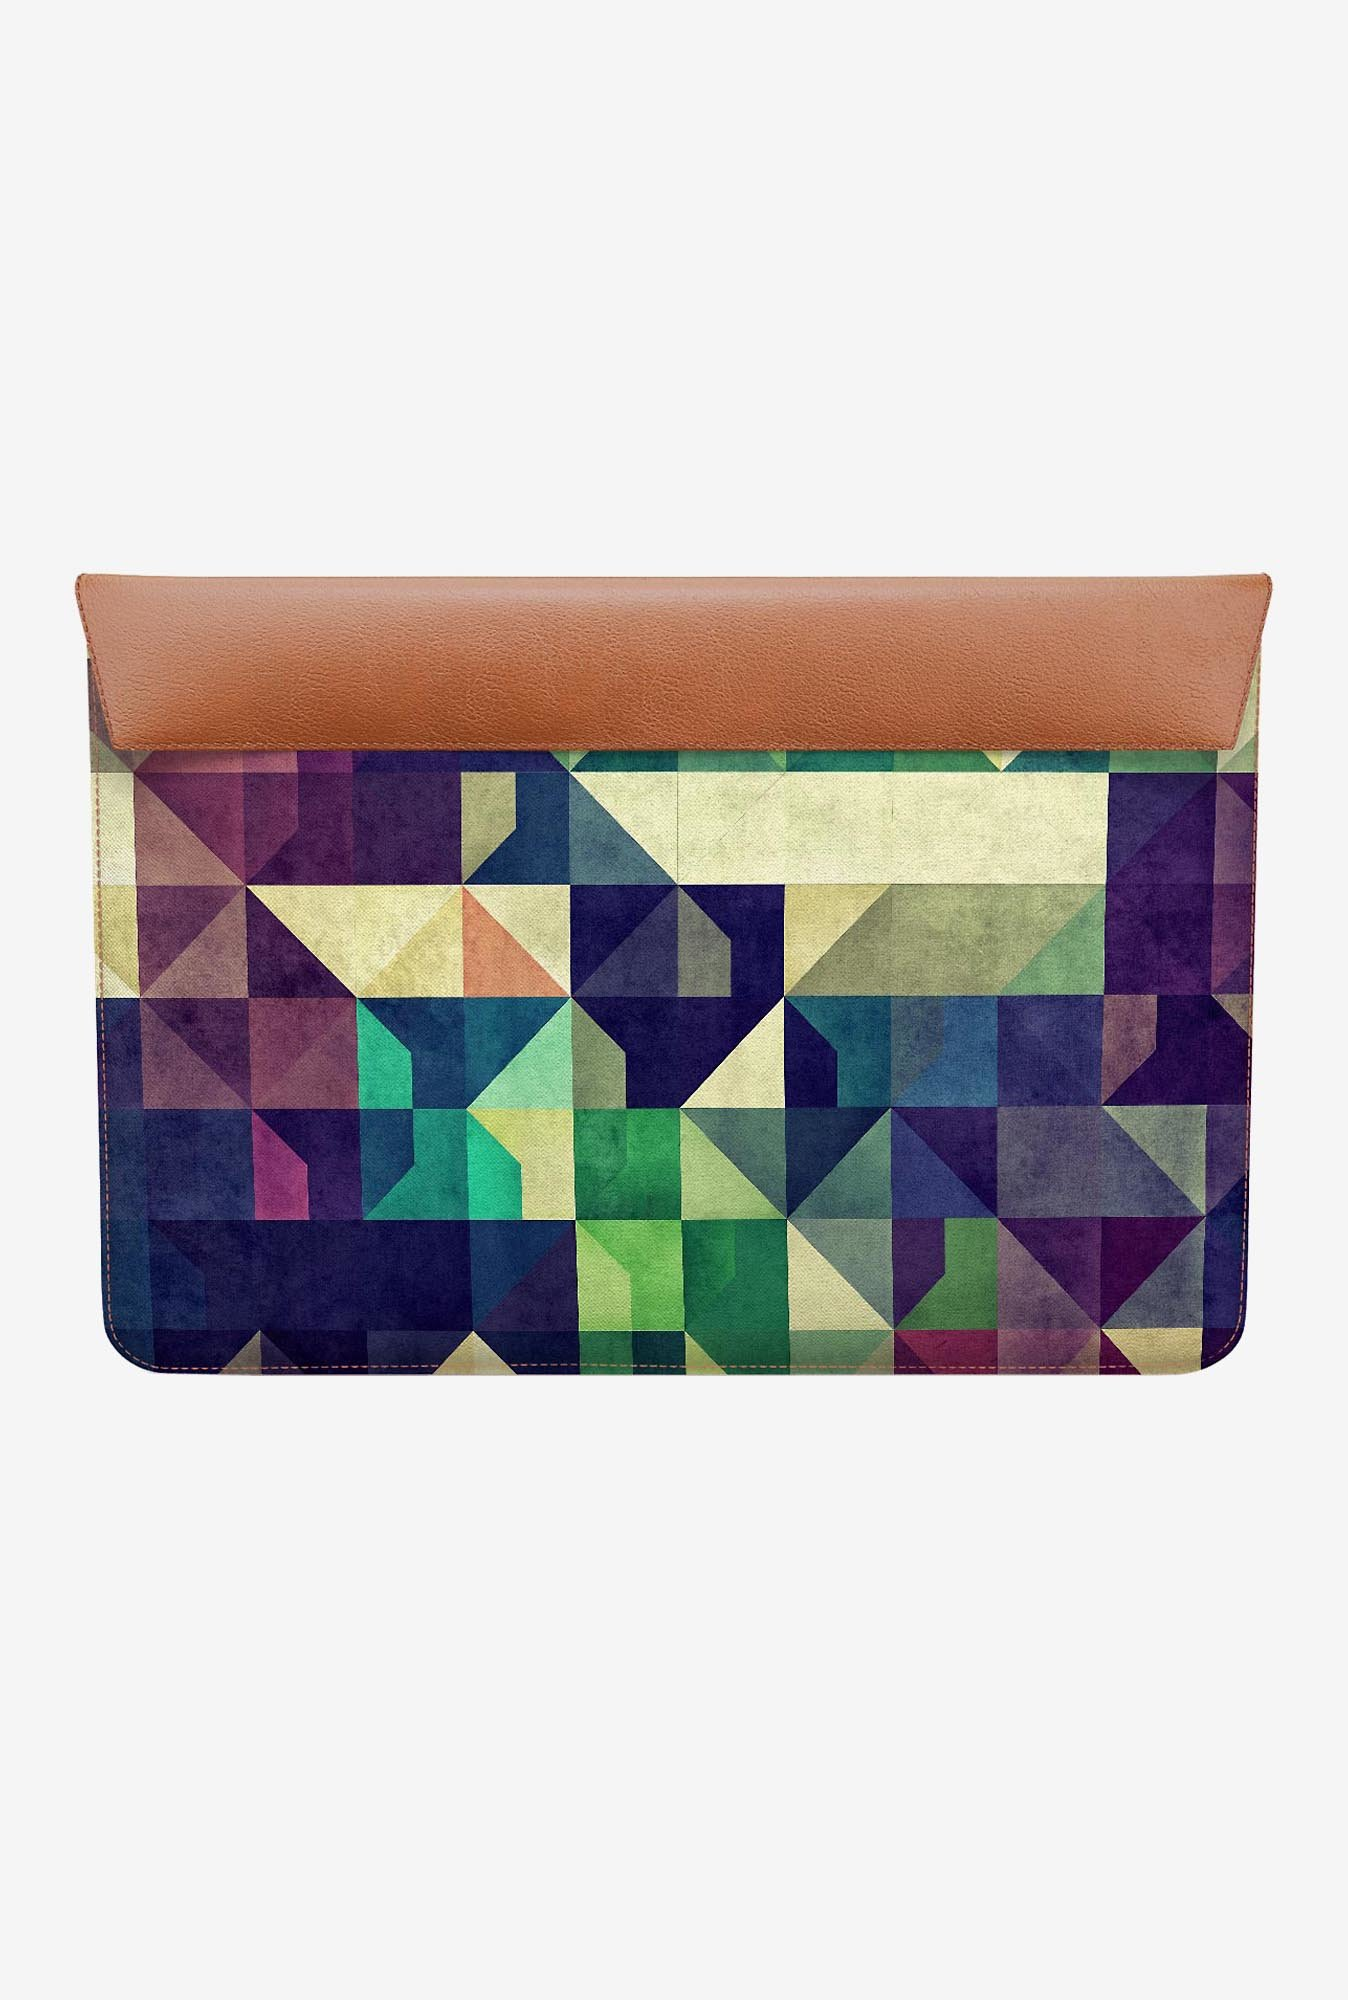 DailyObjects Tyo DDz MacBook Air 11 Envelope Sleeve